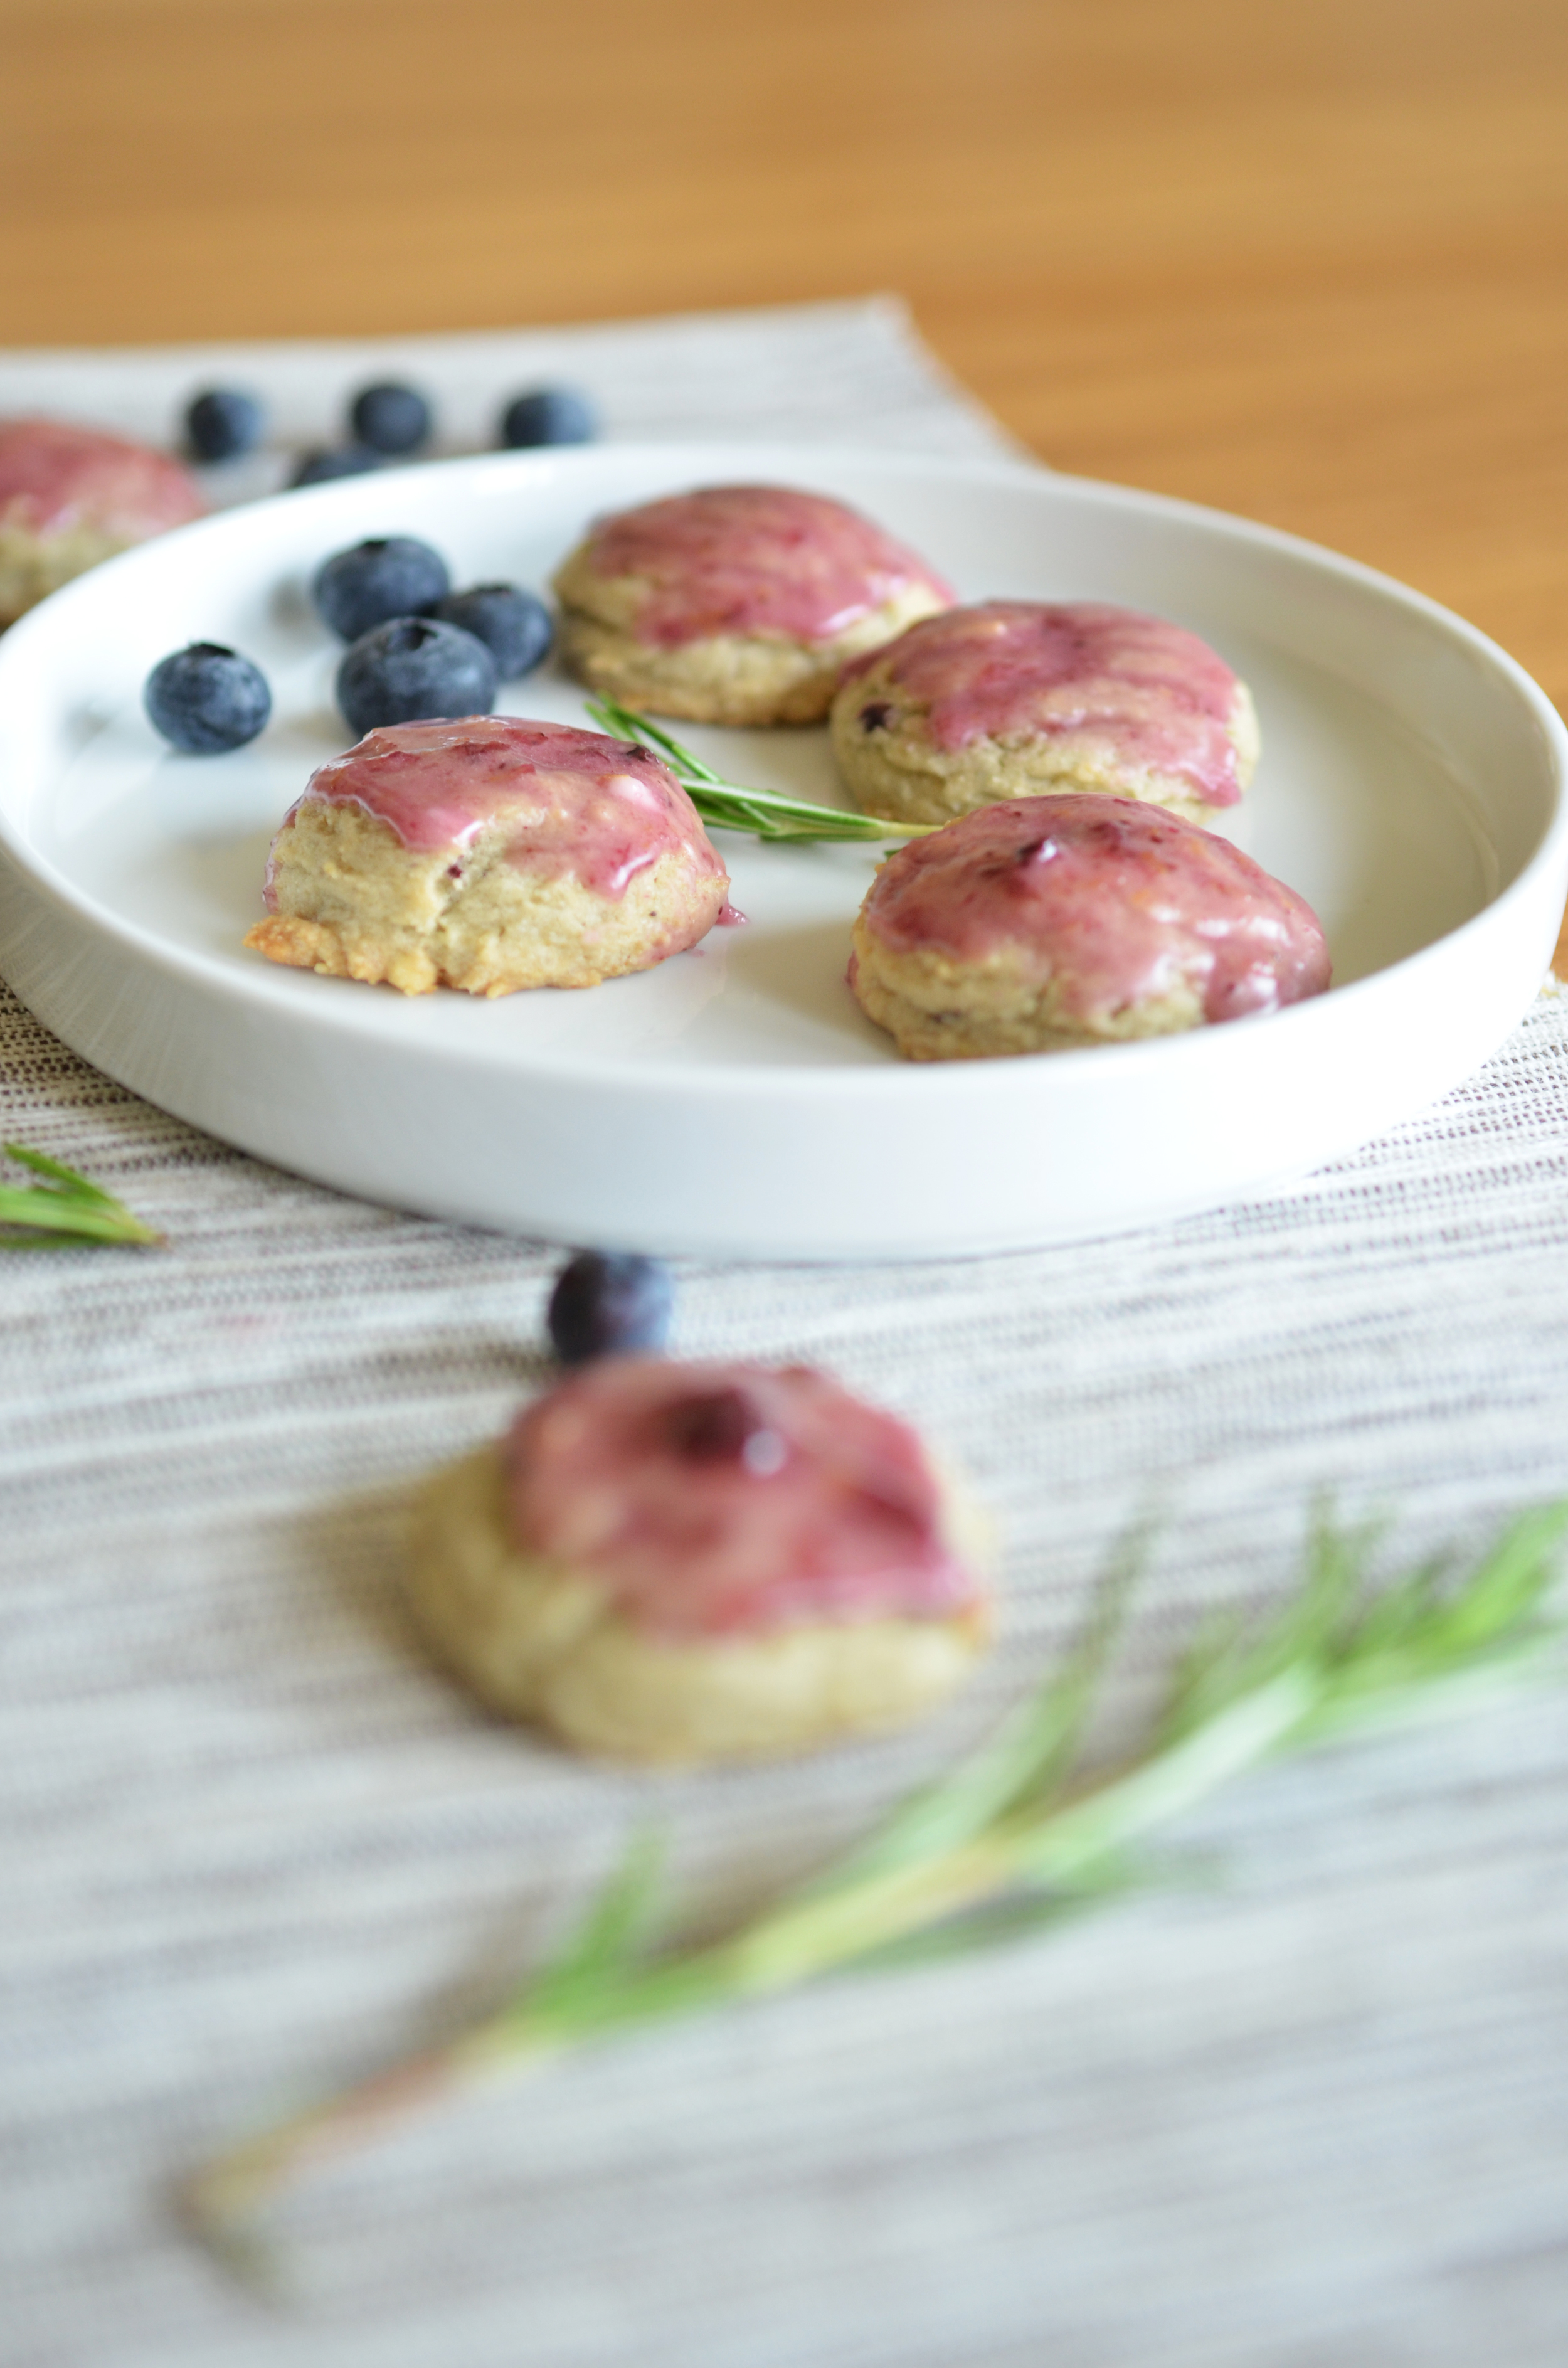 heavenly morsels of blueberry and lemon